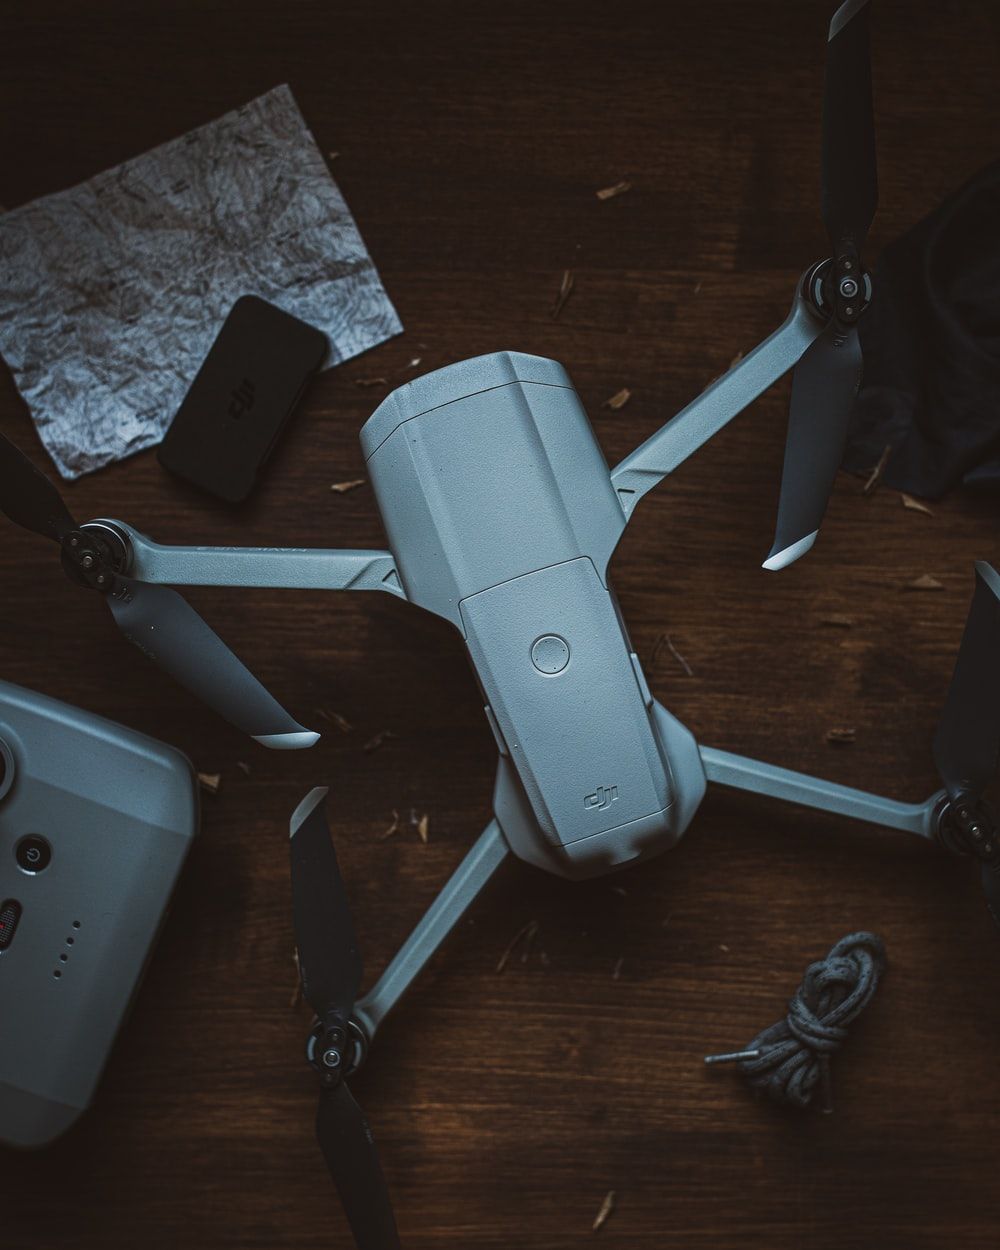 gray and black drone on brown wooden table